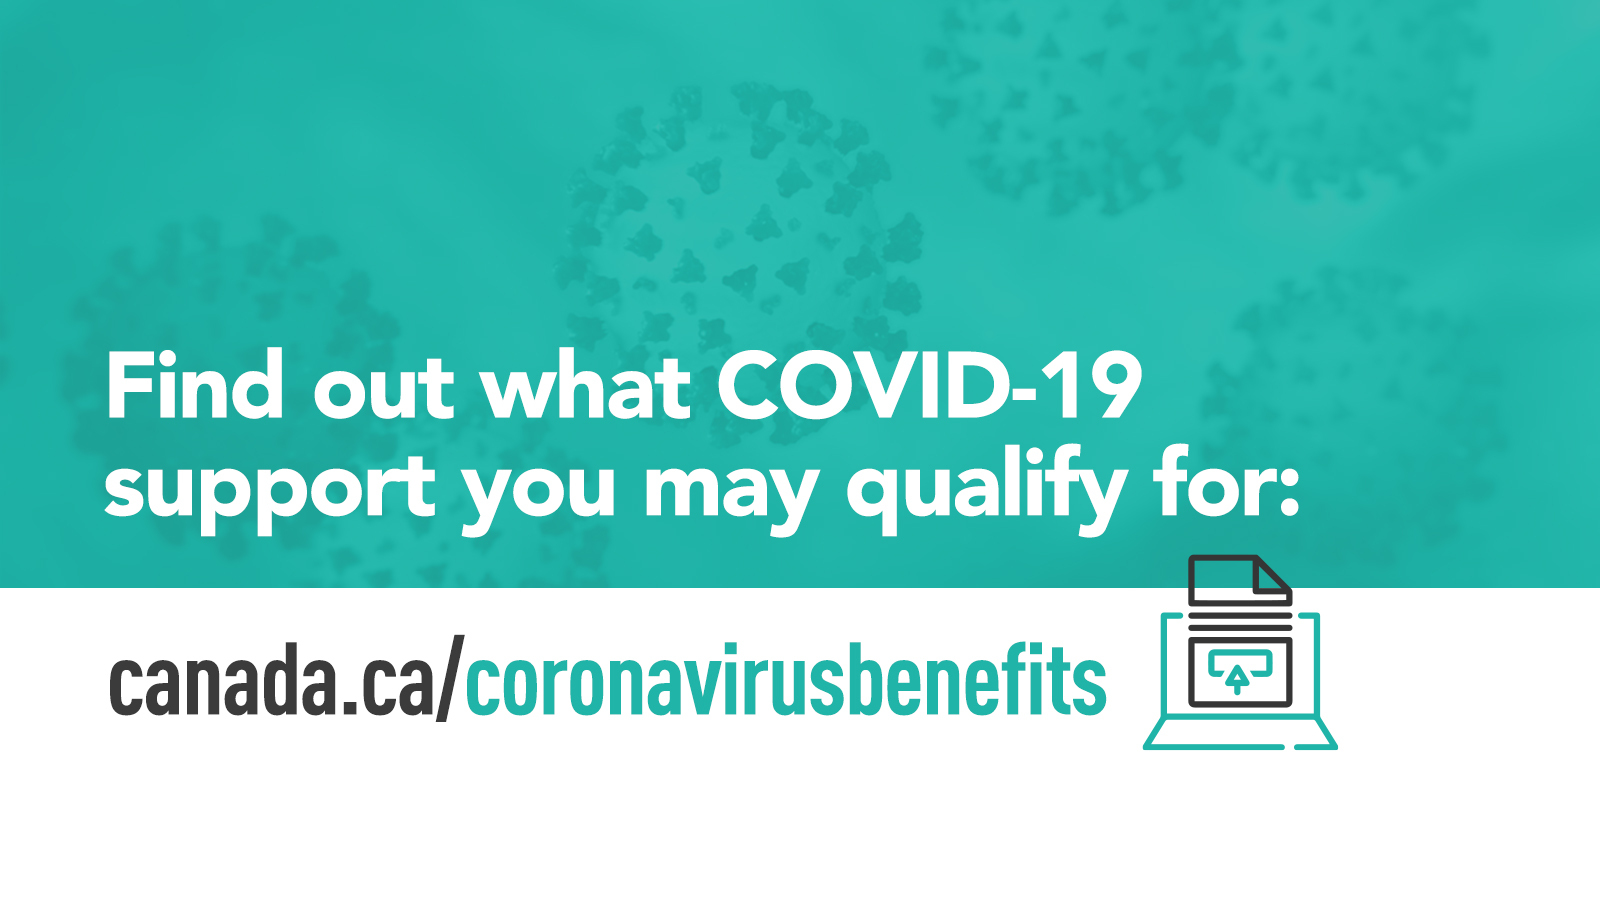 Find out if you qualify for COVID-19 supports